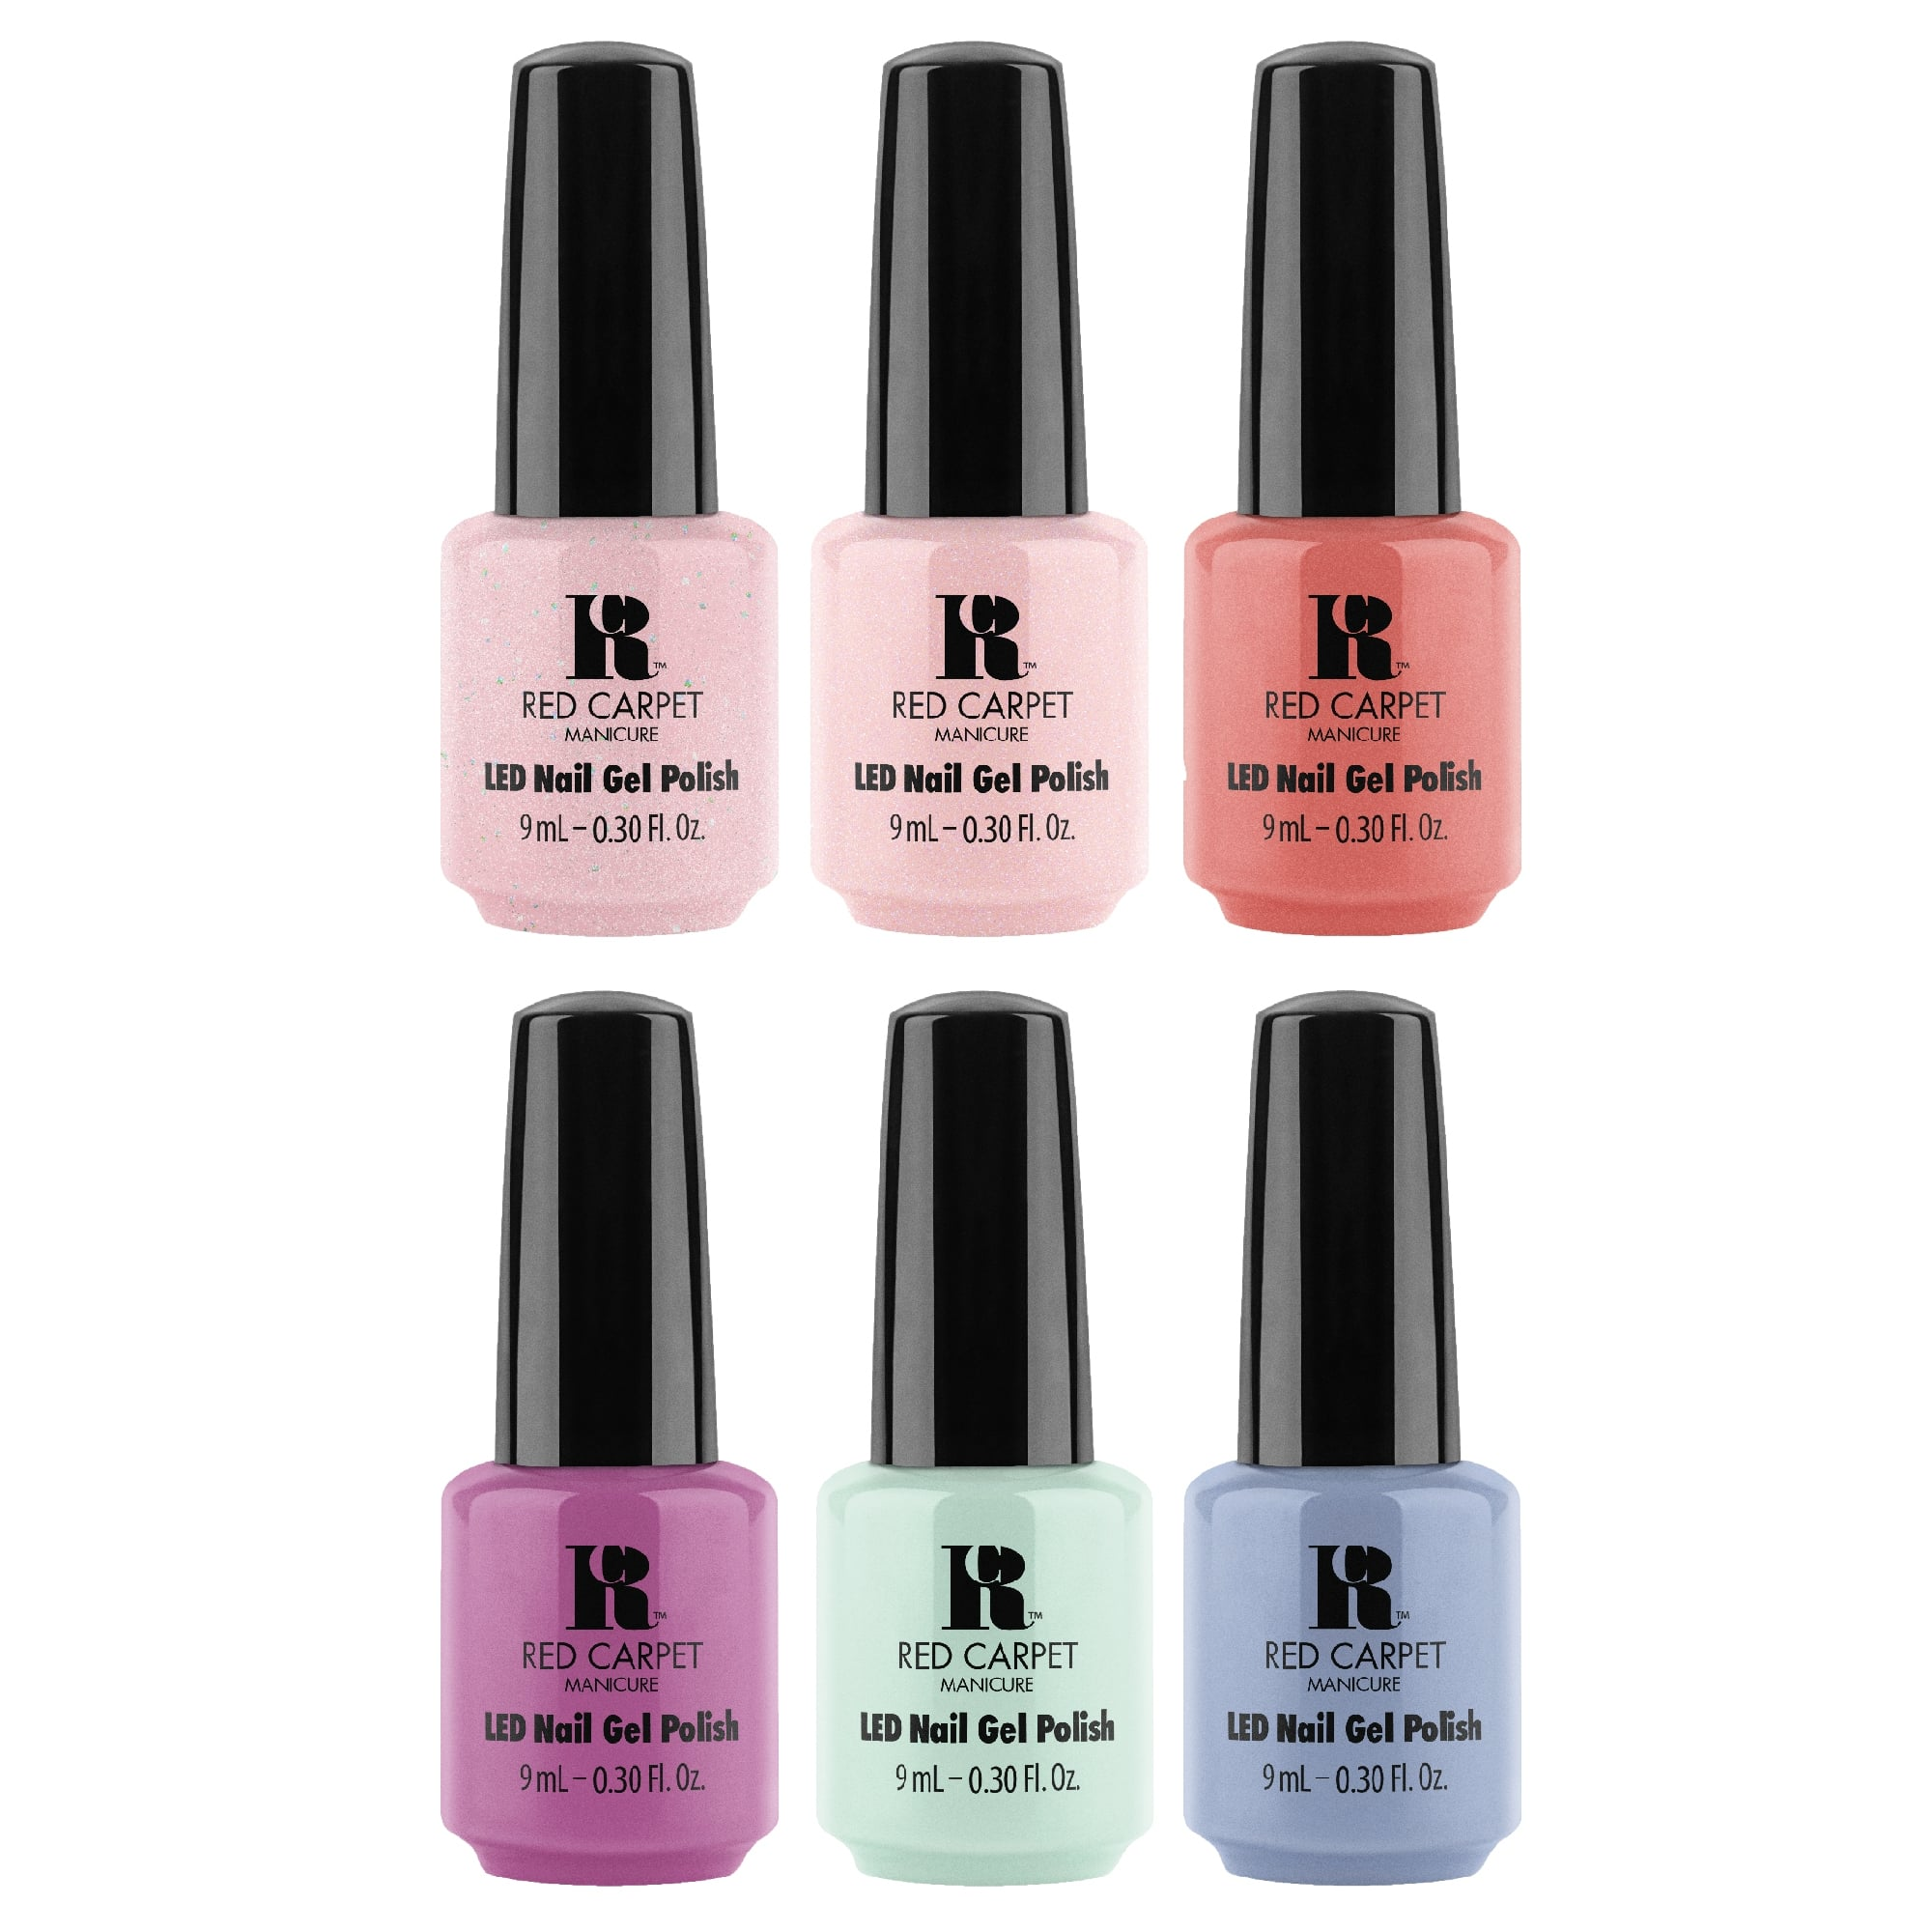 RCM Bloom Style 2018 Gel Polish Collection - Complete 6 Piece Set